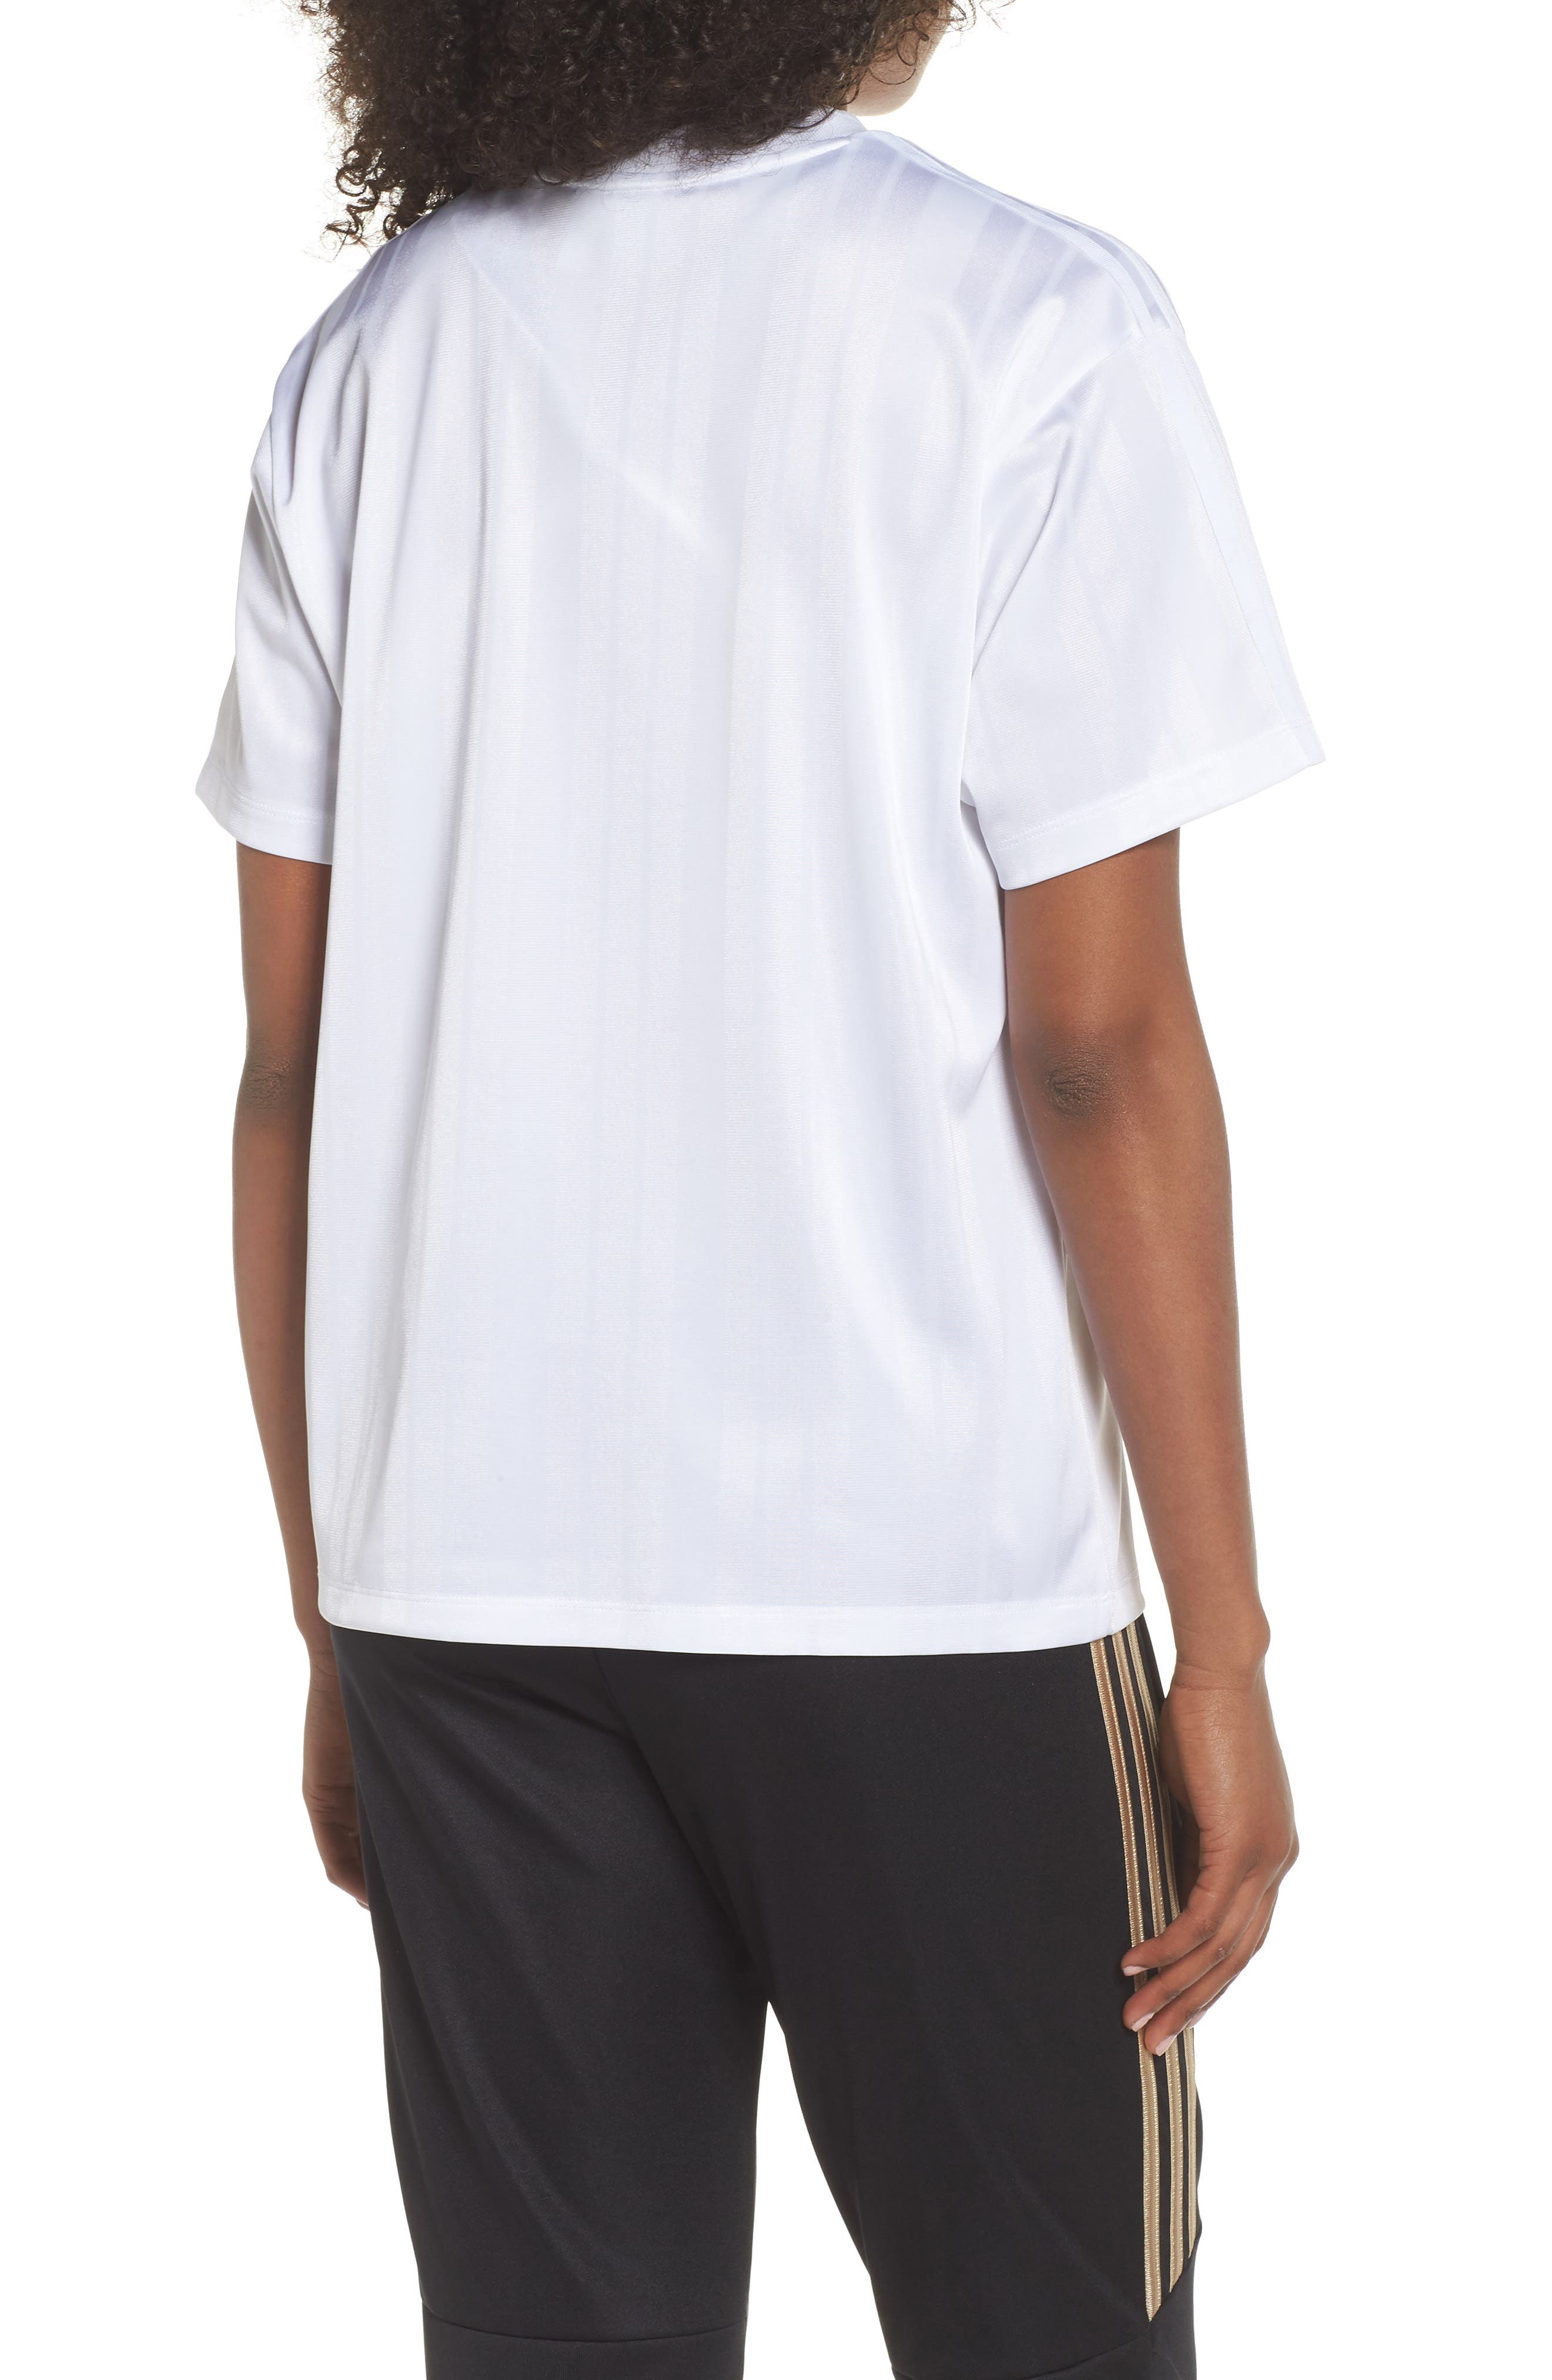 Originals Fashion League Jersey Tee,                             Alternate thumbnail 2, color,                             100